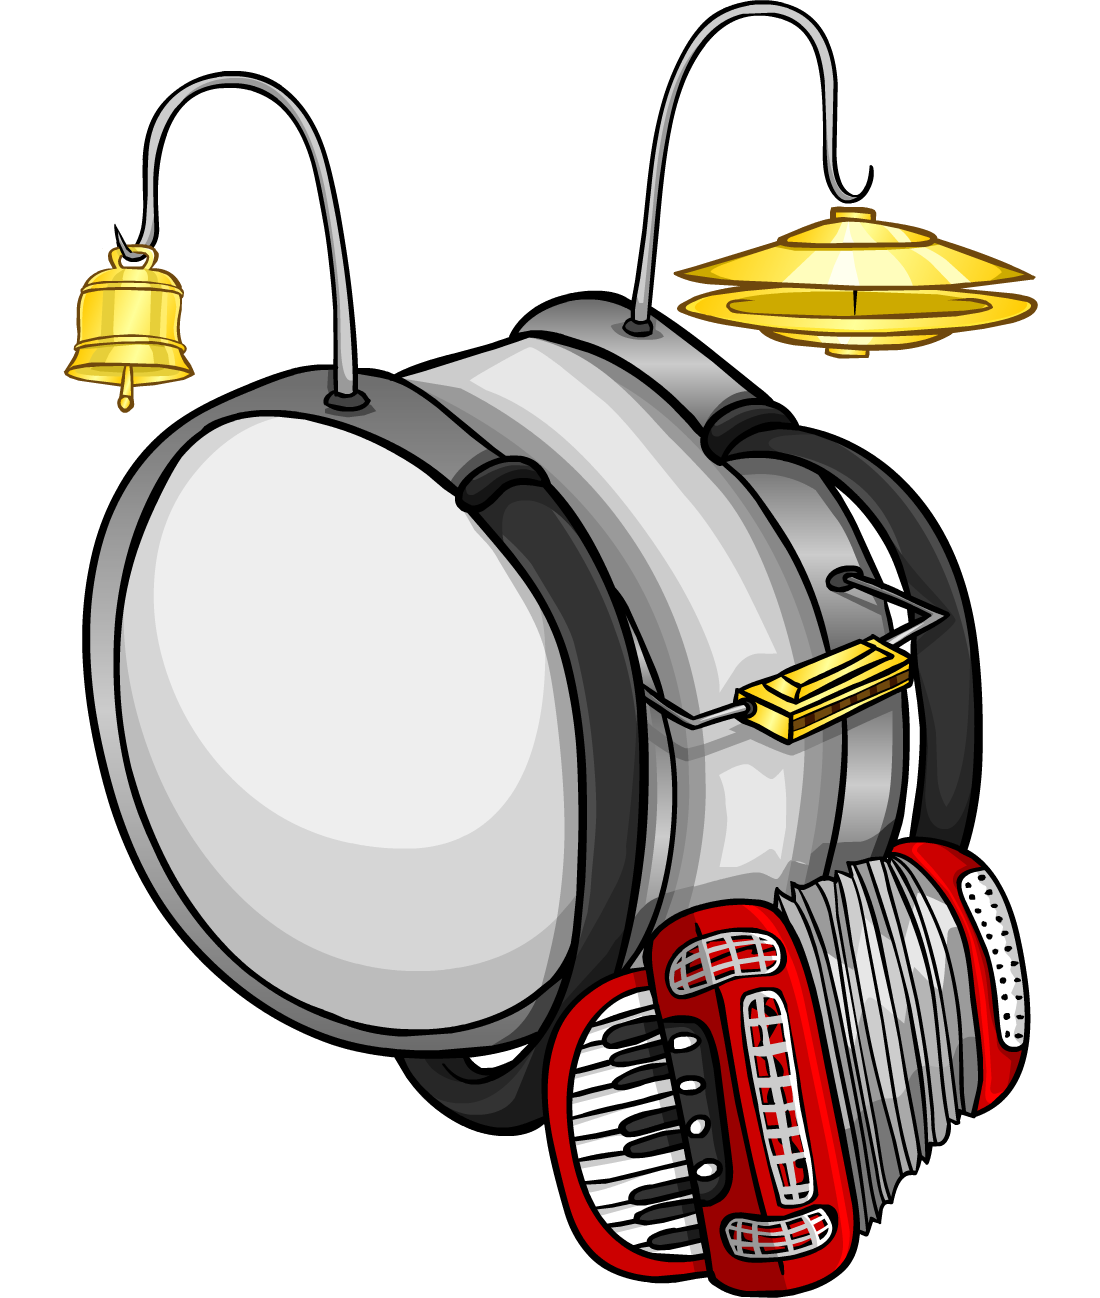 Png One Man Band - One Man Band | Club Penguin Rewritten Wiki | FANDOM powered by Wikia